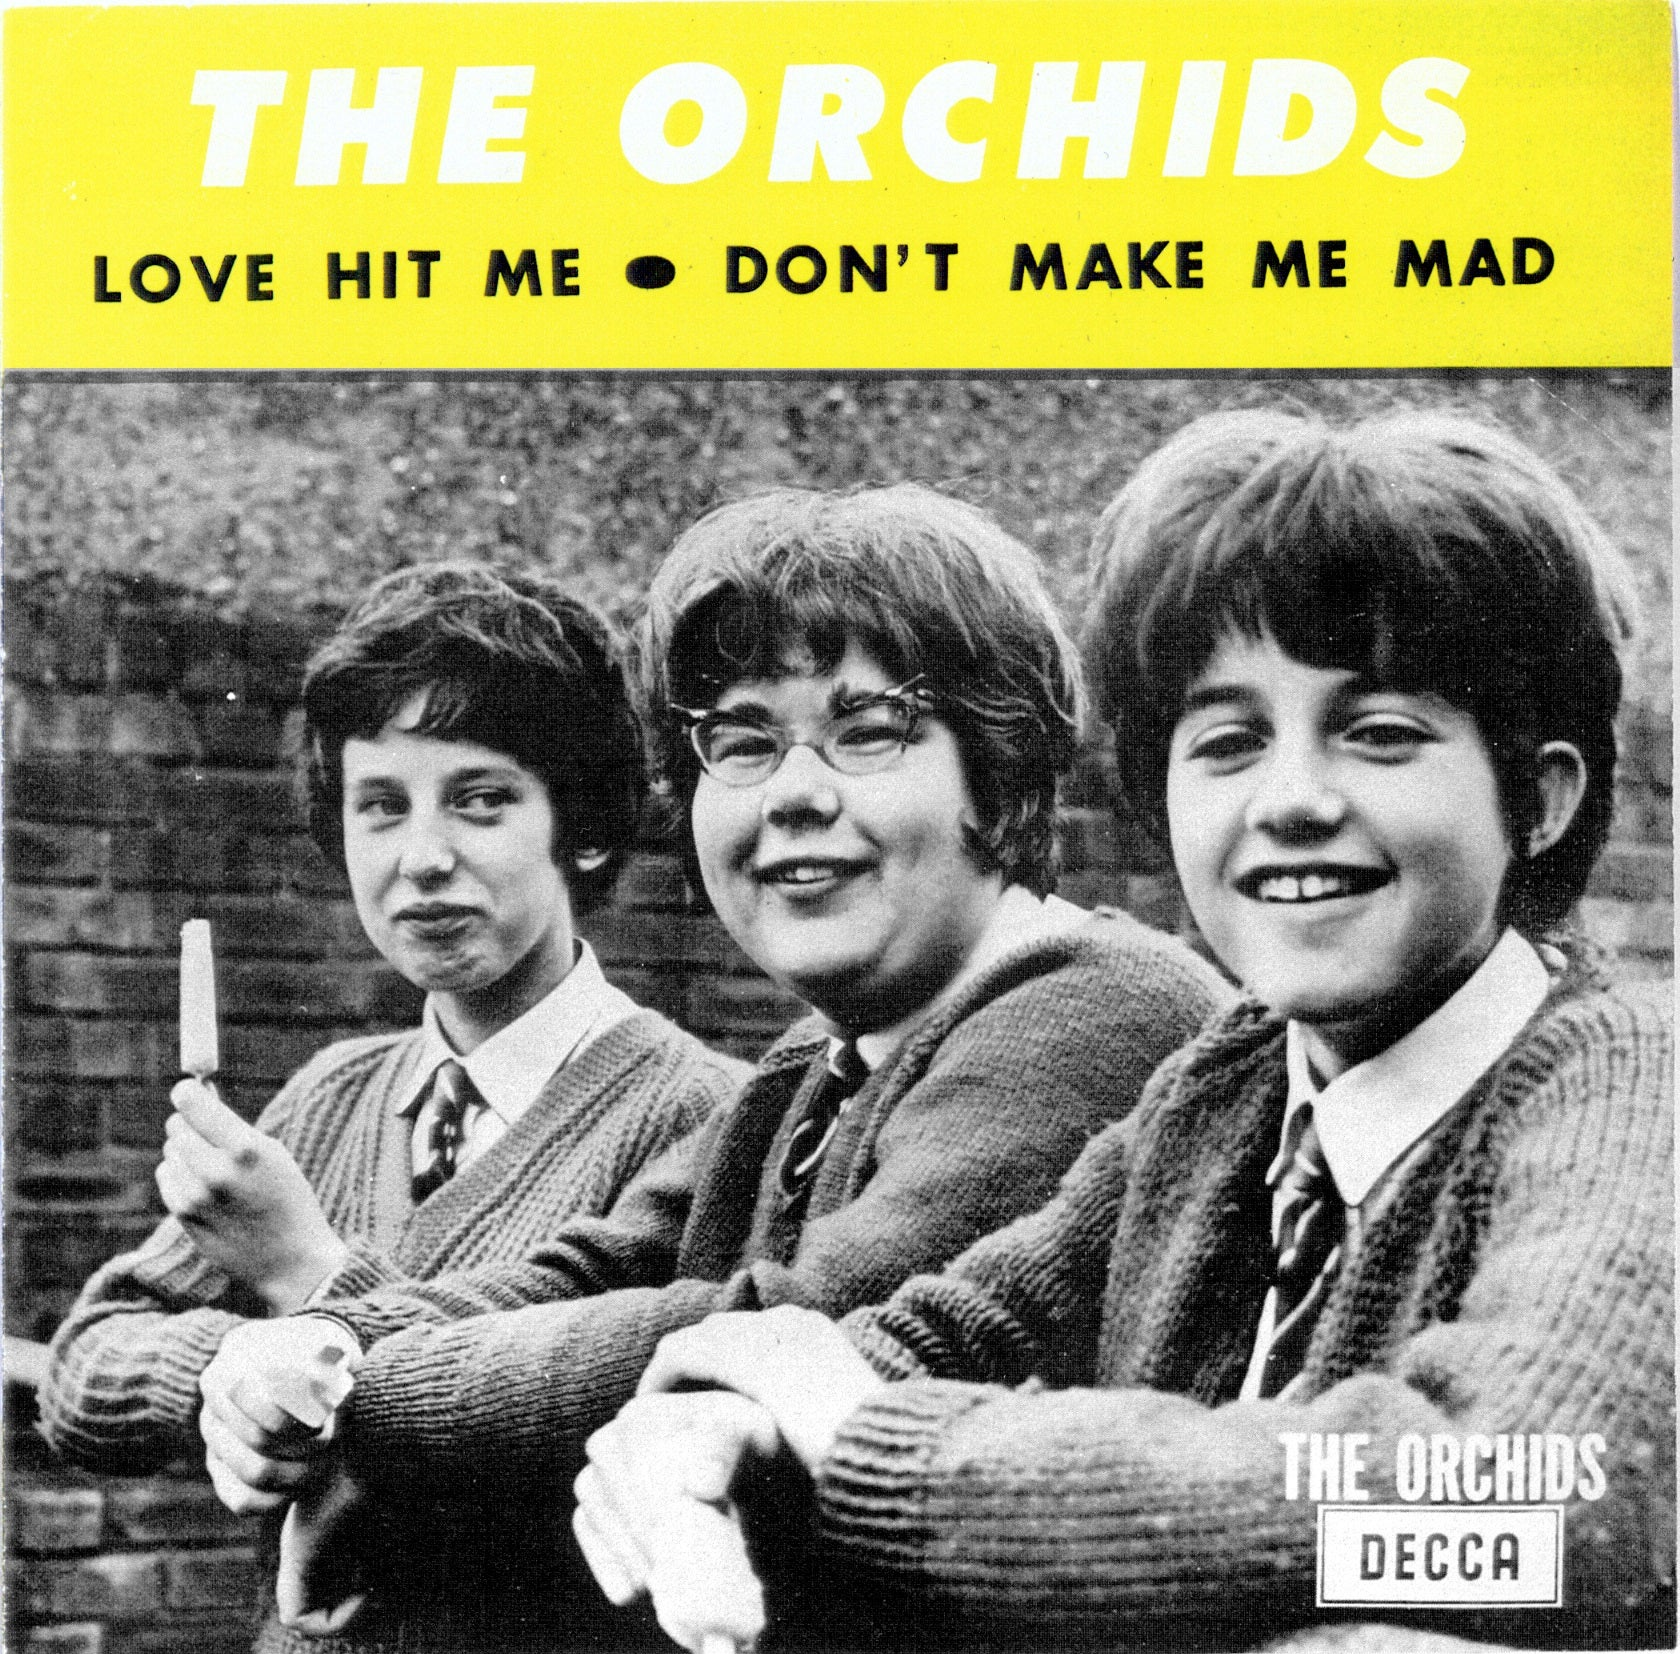 The Orchids were 14 years old, pop's next big thing – and unable to afford the train home